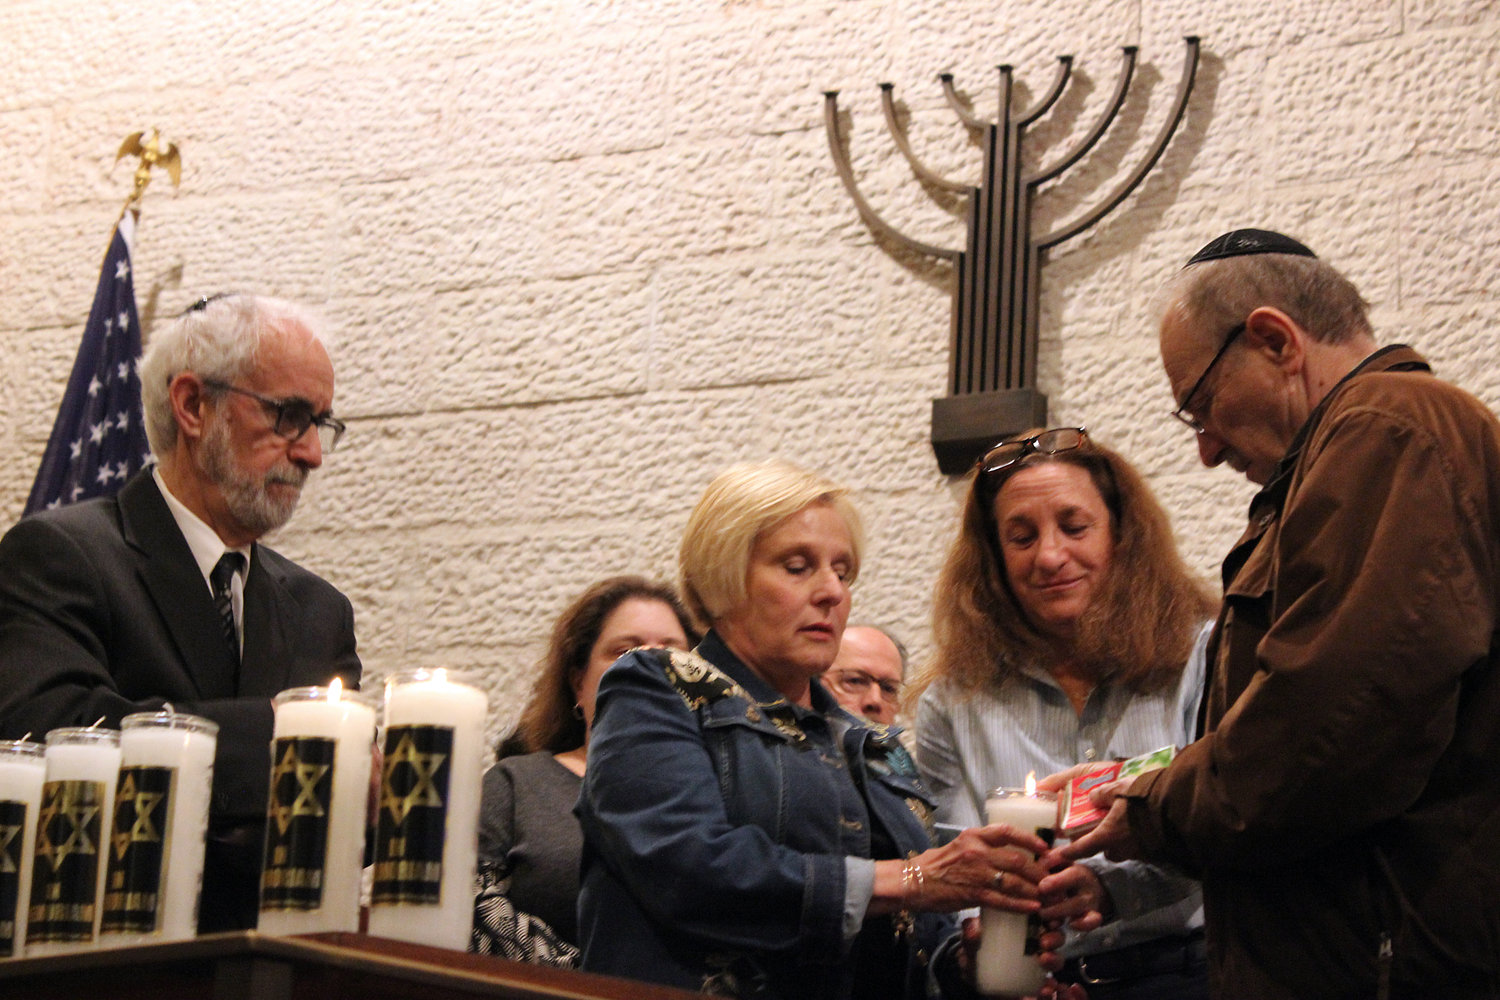 Rabbi Ronald Androphy invited Holocaust survivors and children of survivors to light a candle in remembrance at a service to commemorate Holocaust Remembrance Day at the East Meadow Jewish Center on May 2.